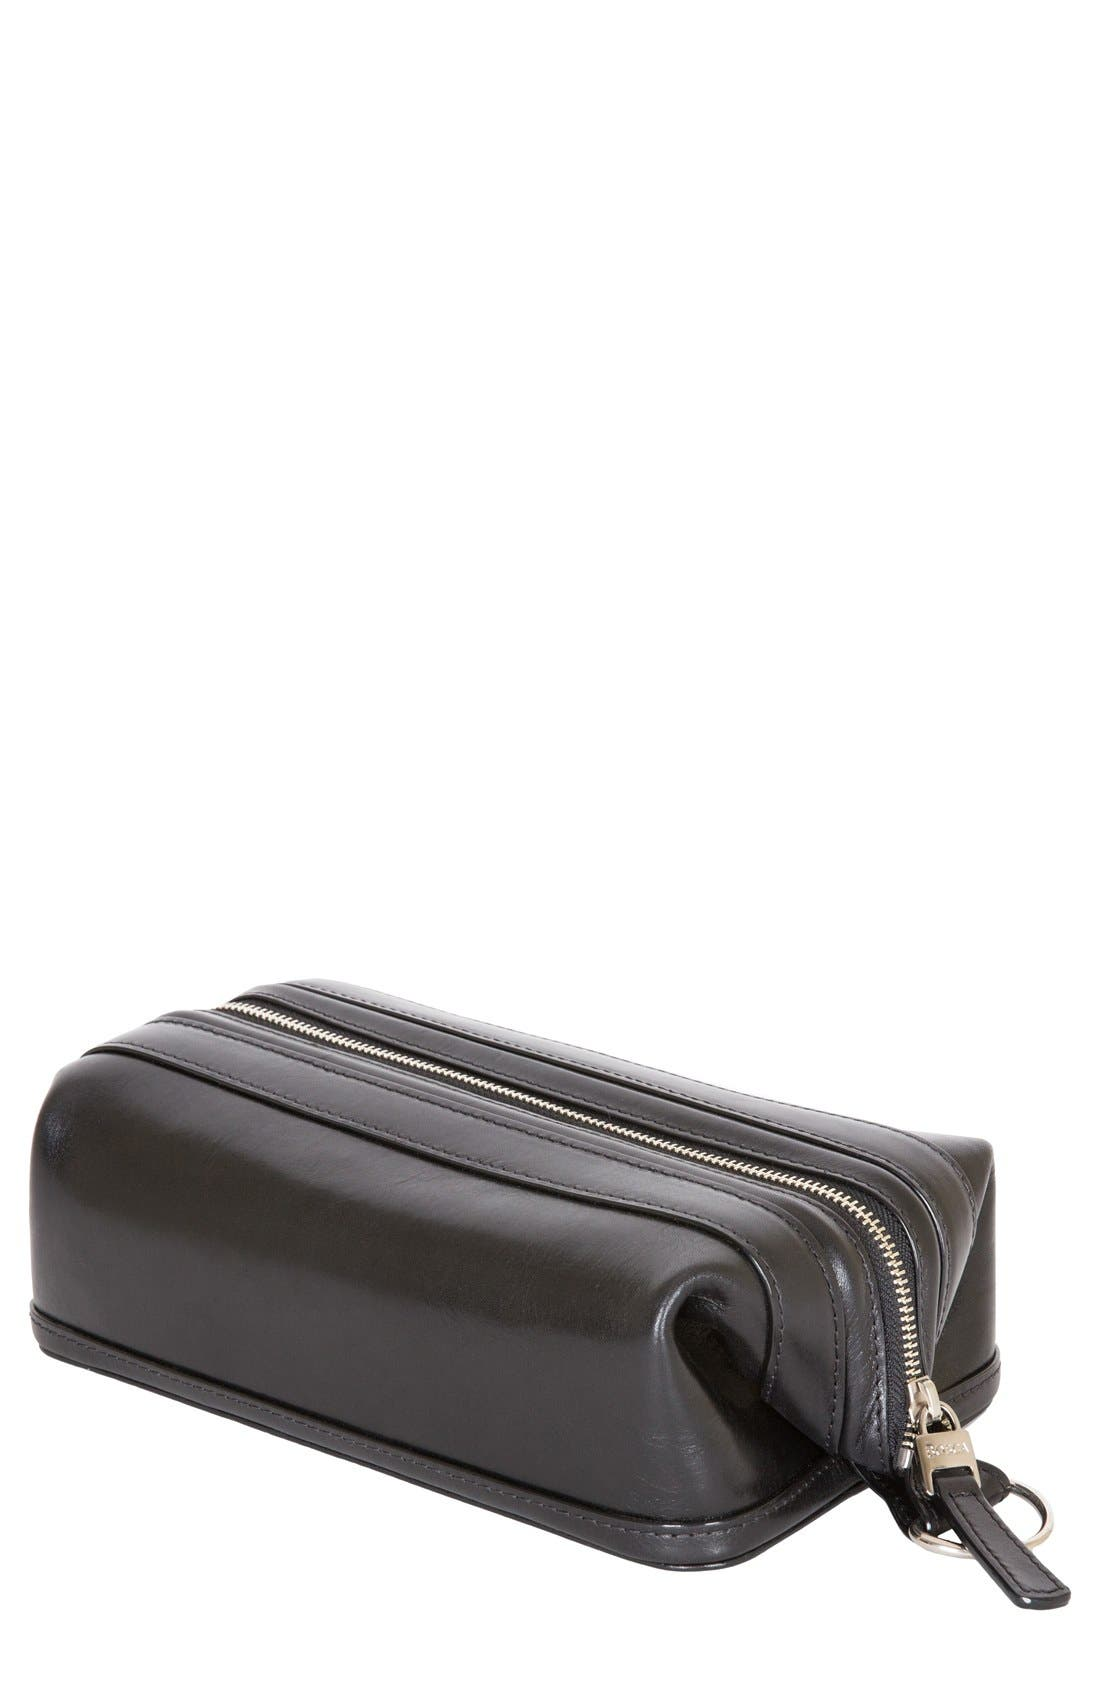 Leather Dopp Kit,                         Main,                         color, BLACK